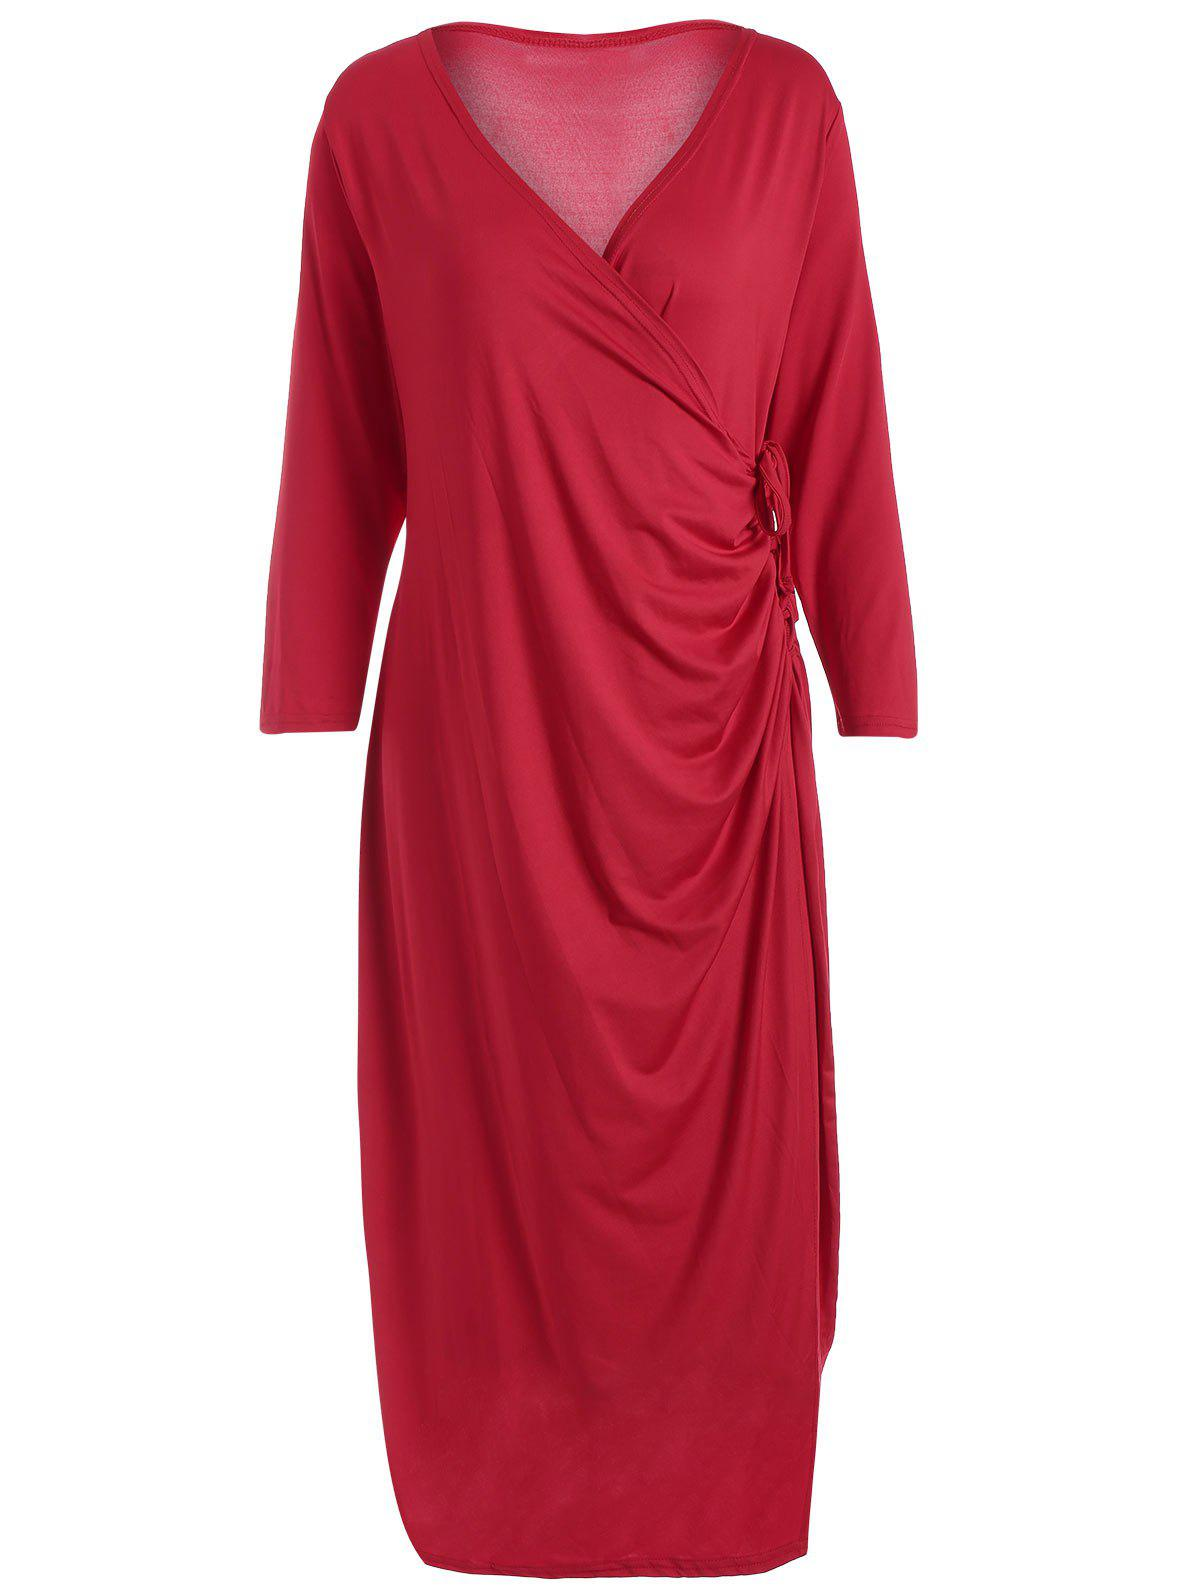 Robe fini au genou taille grand - Rouge 3XL